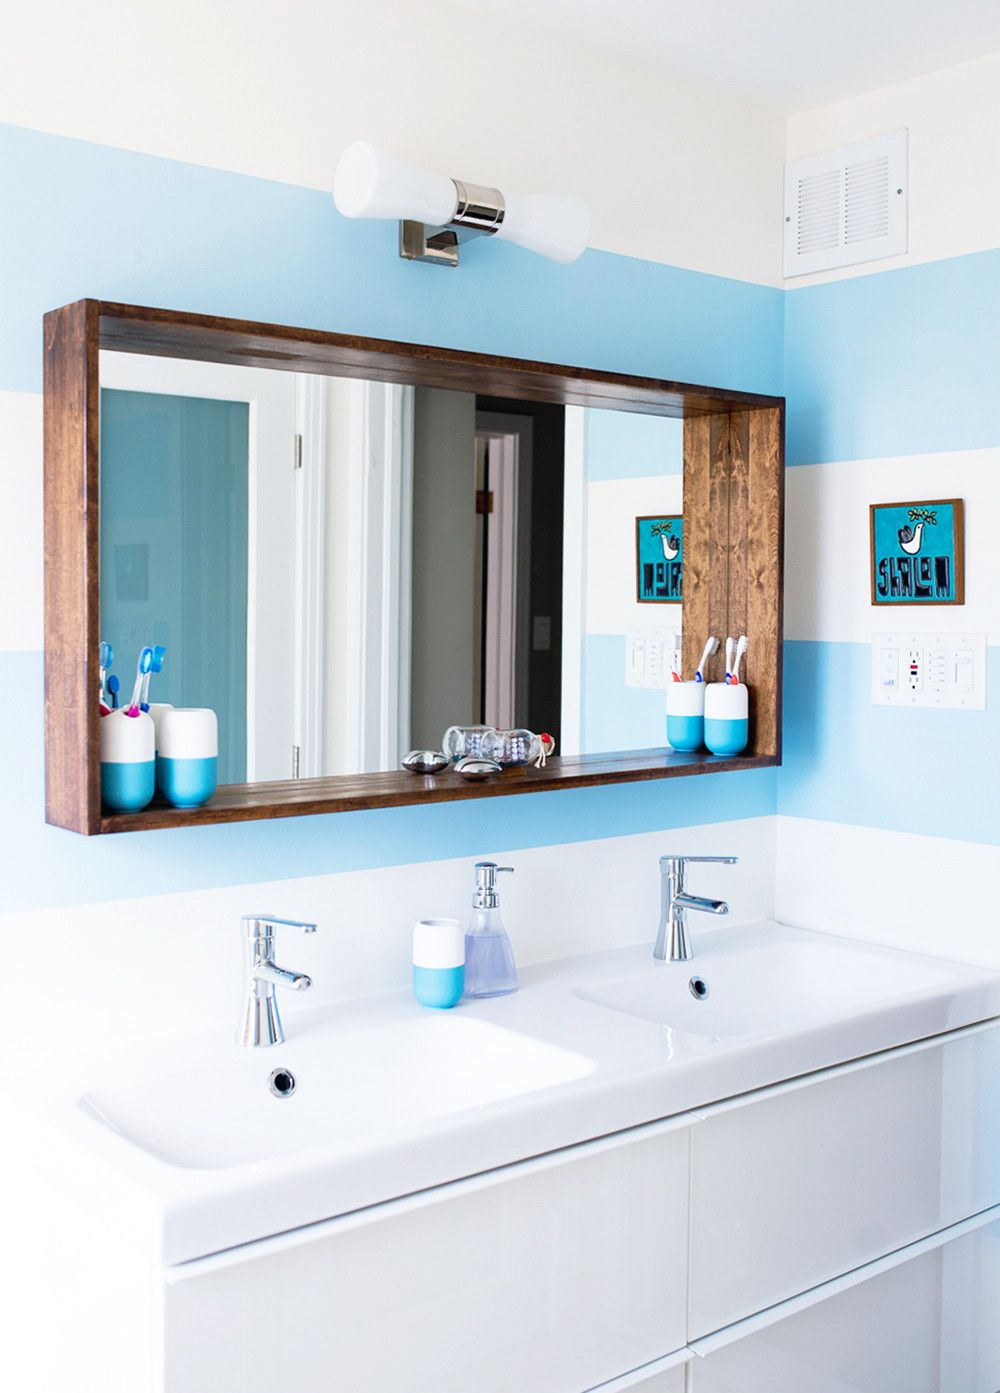 Are You Searching For Bathroom Mirror Ideas And Inspiration Browse Our Photo Gallery Selection Of Custom Frames